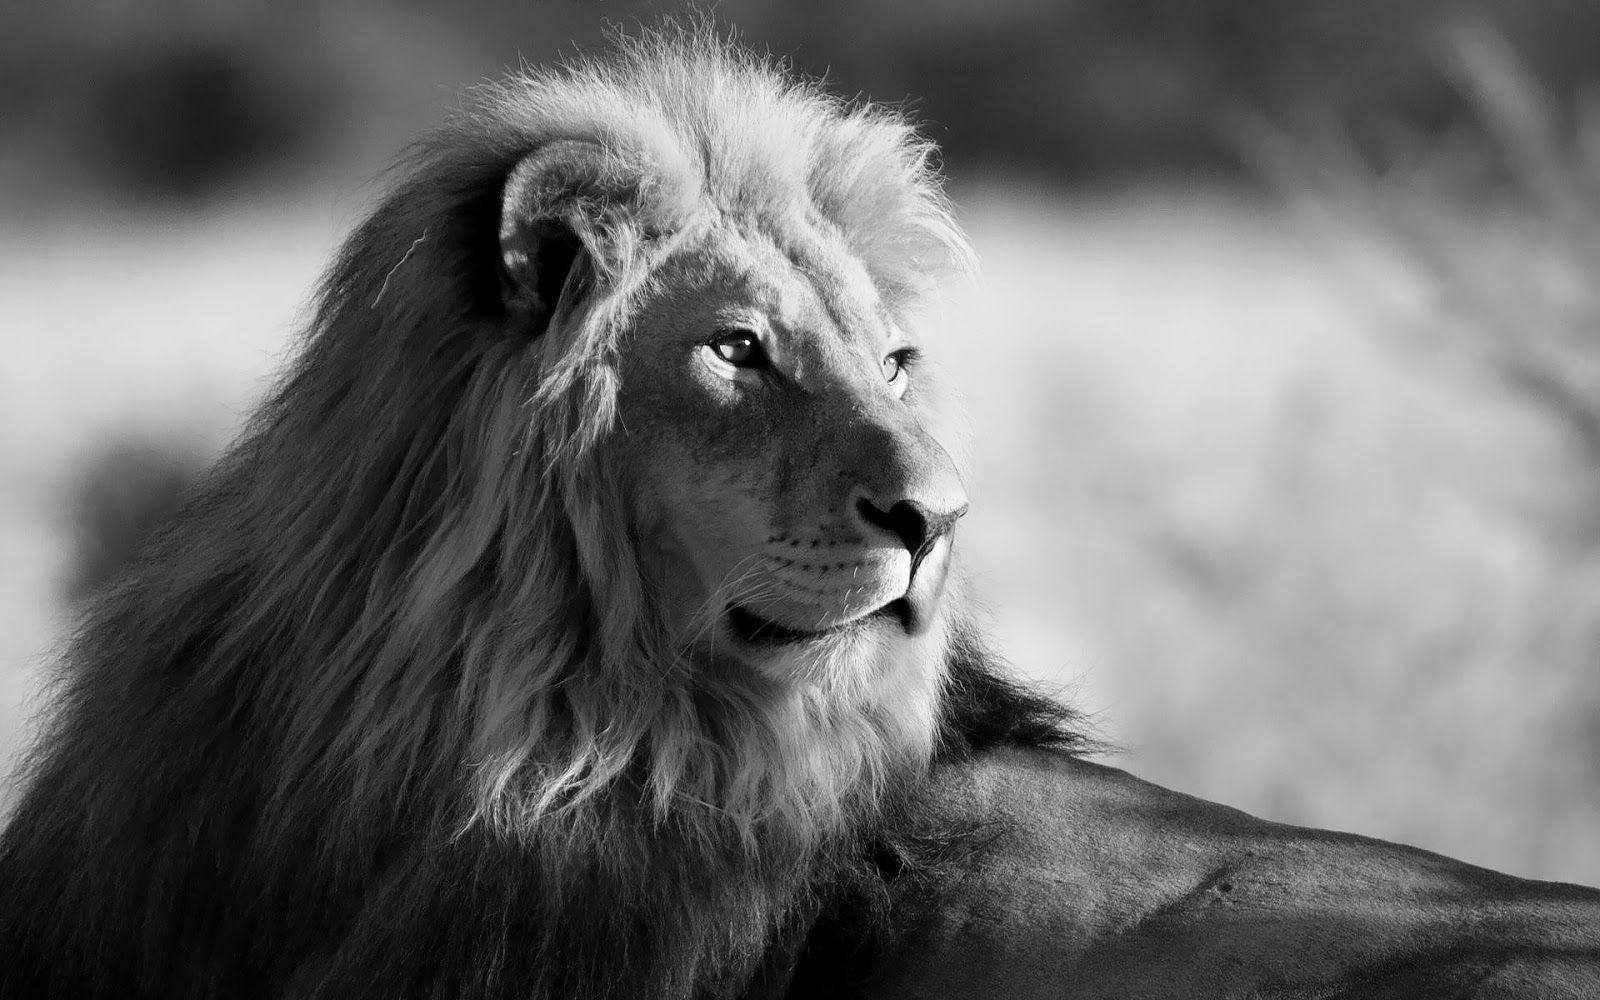 black and white photos | black and white wallpaper with lion | hd